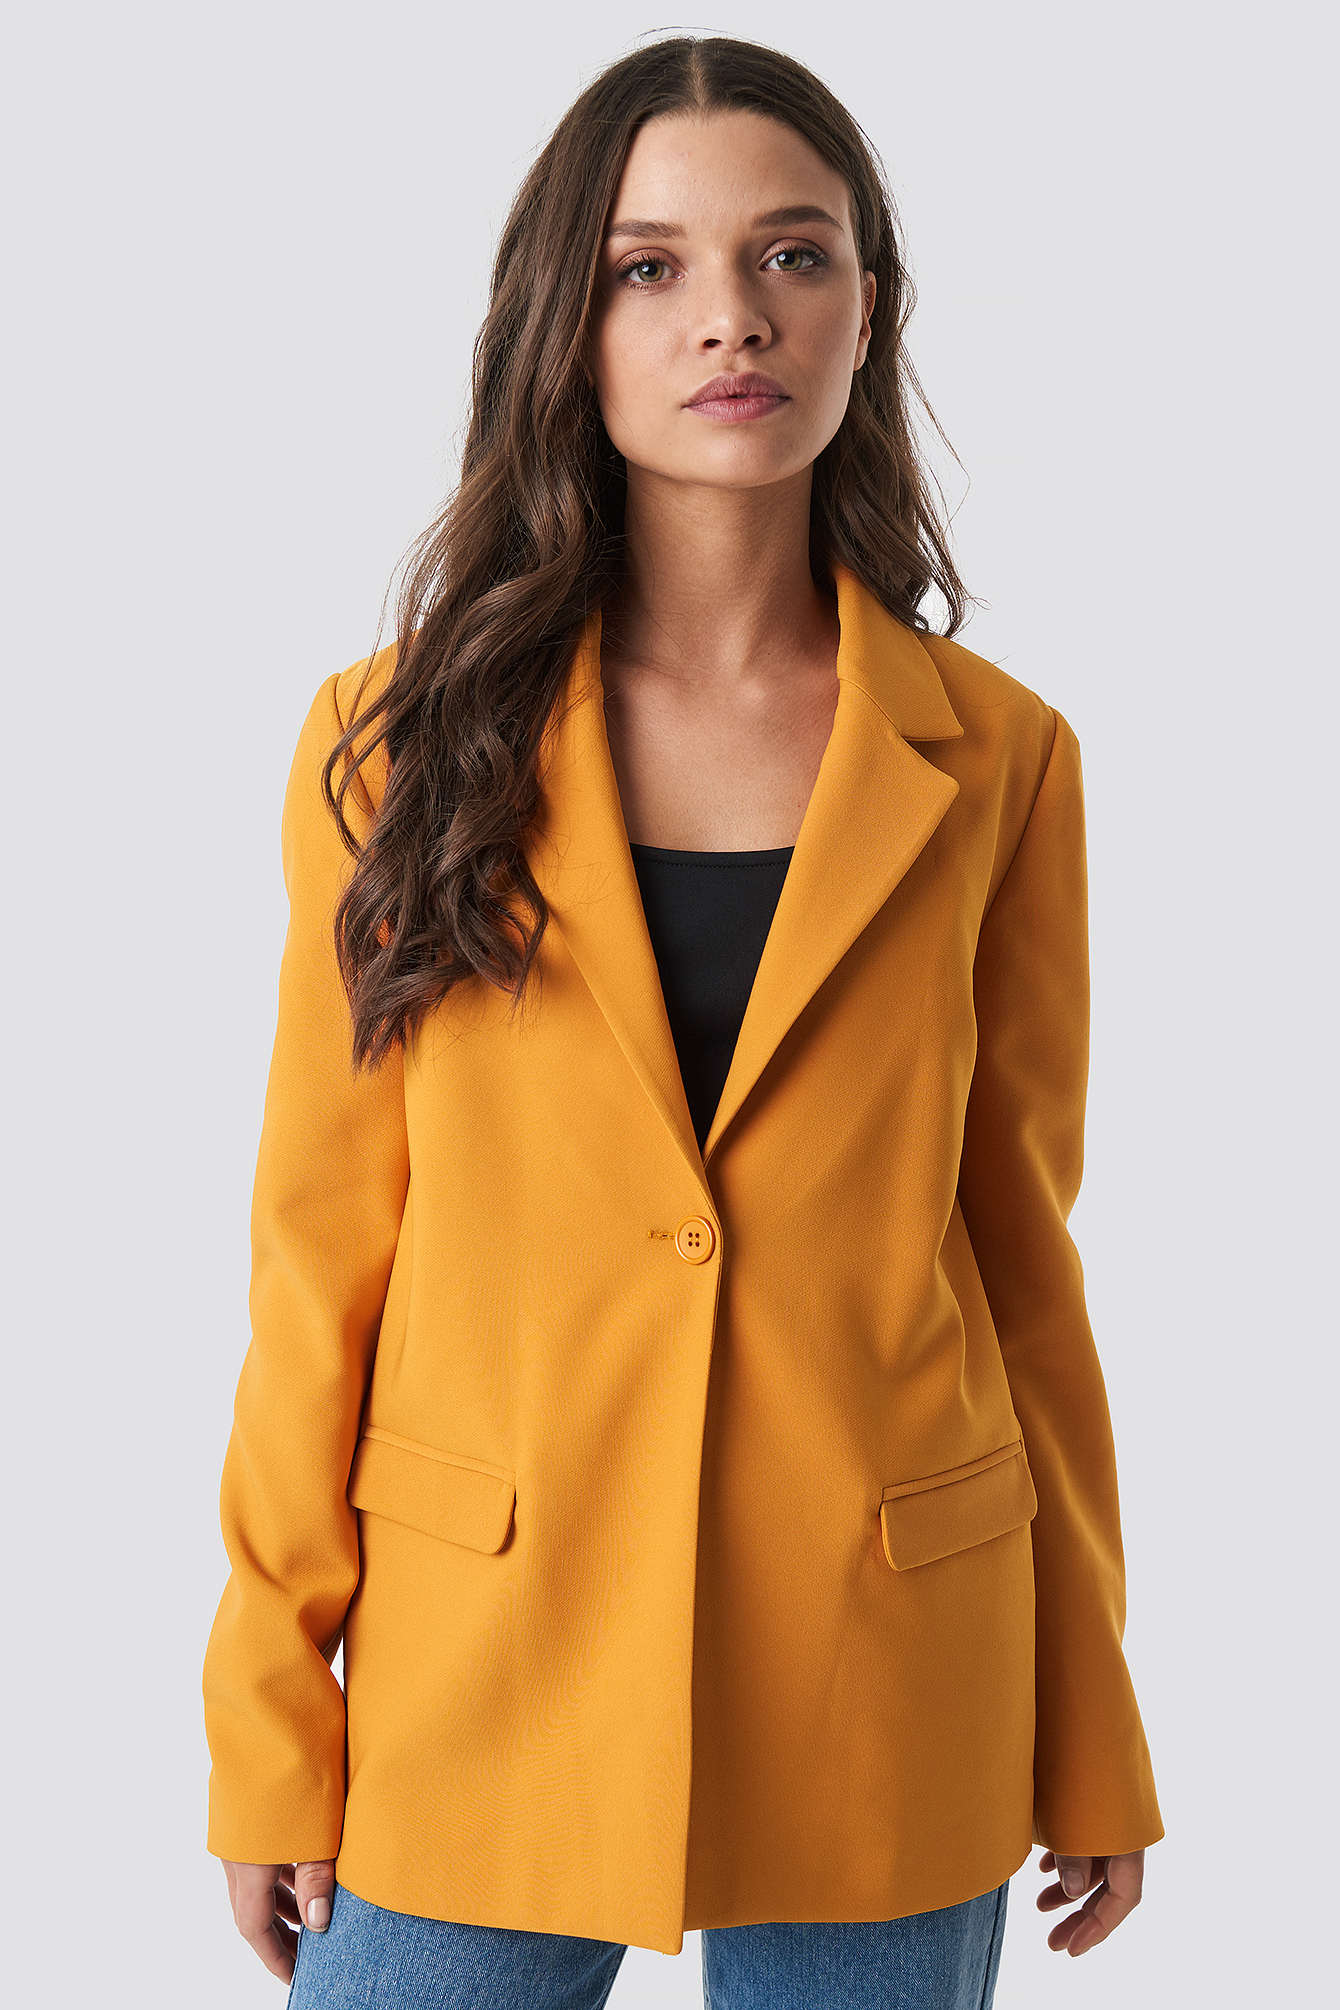 astrid olsen x na-kd -  Single Button Blazer - Orange